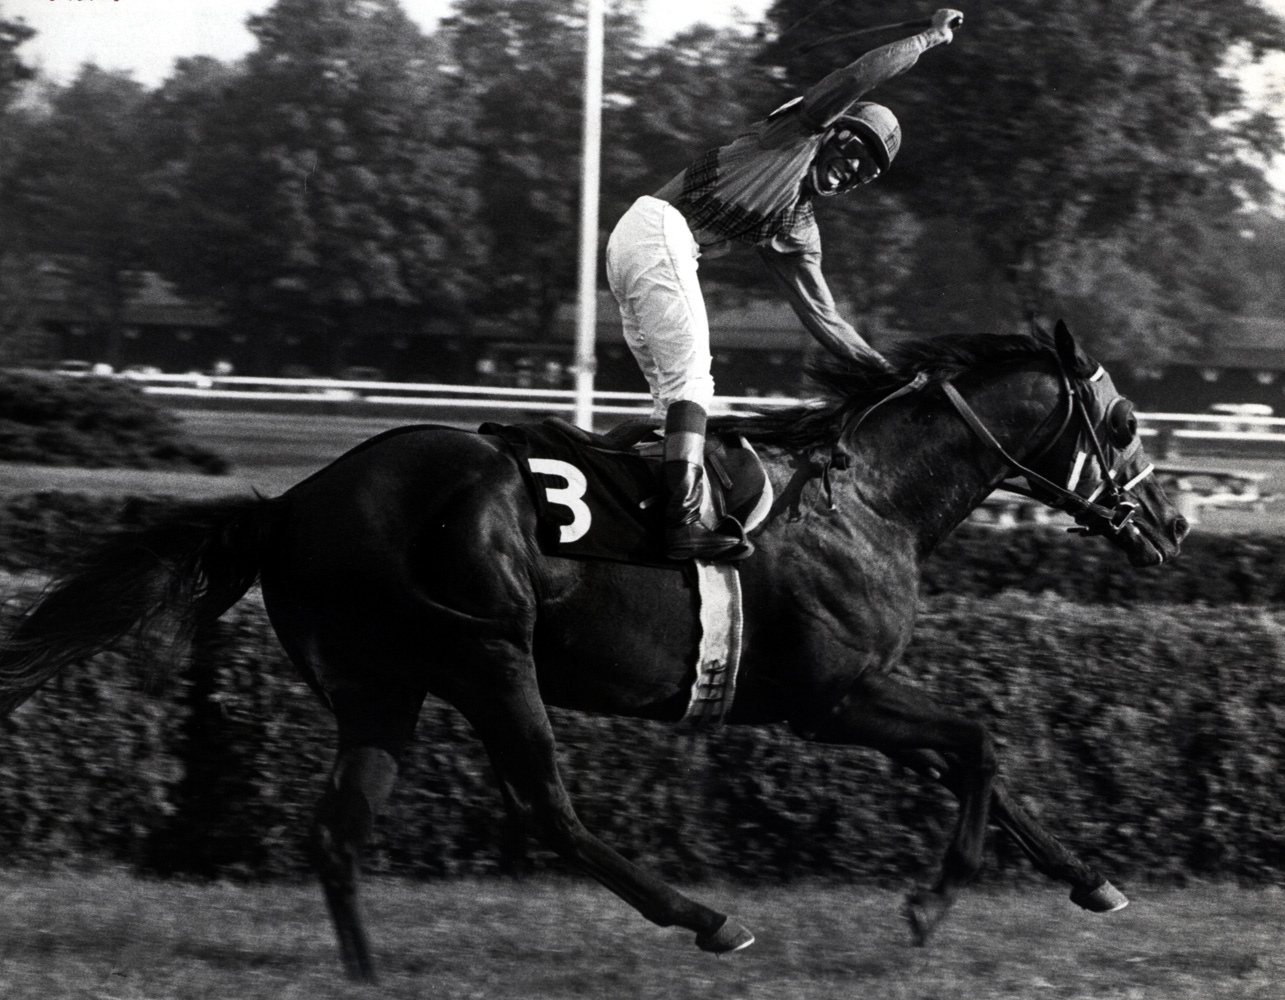 Angel Cordero, Jr. celebrating a win at Saratoga (Museum Collection)